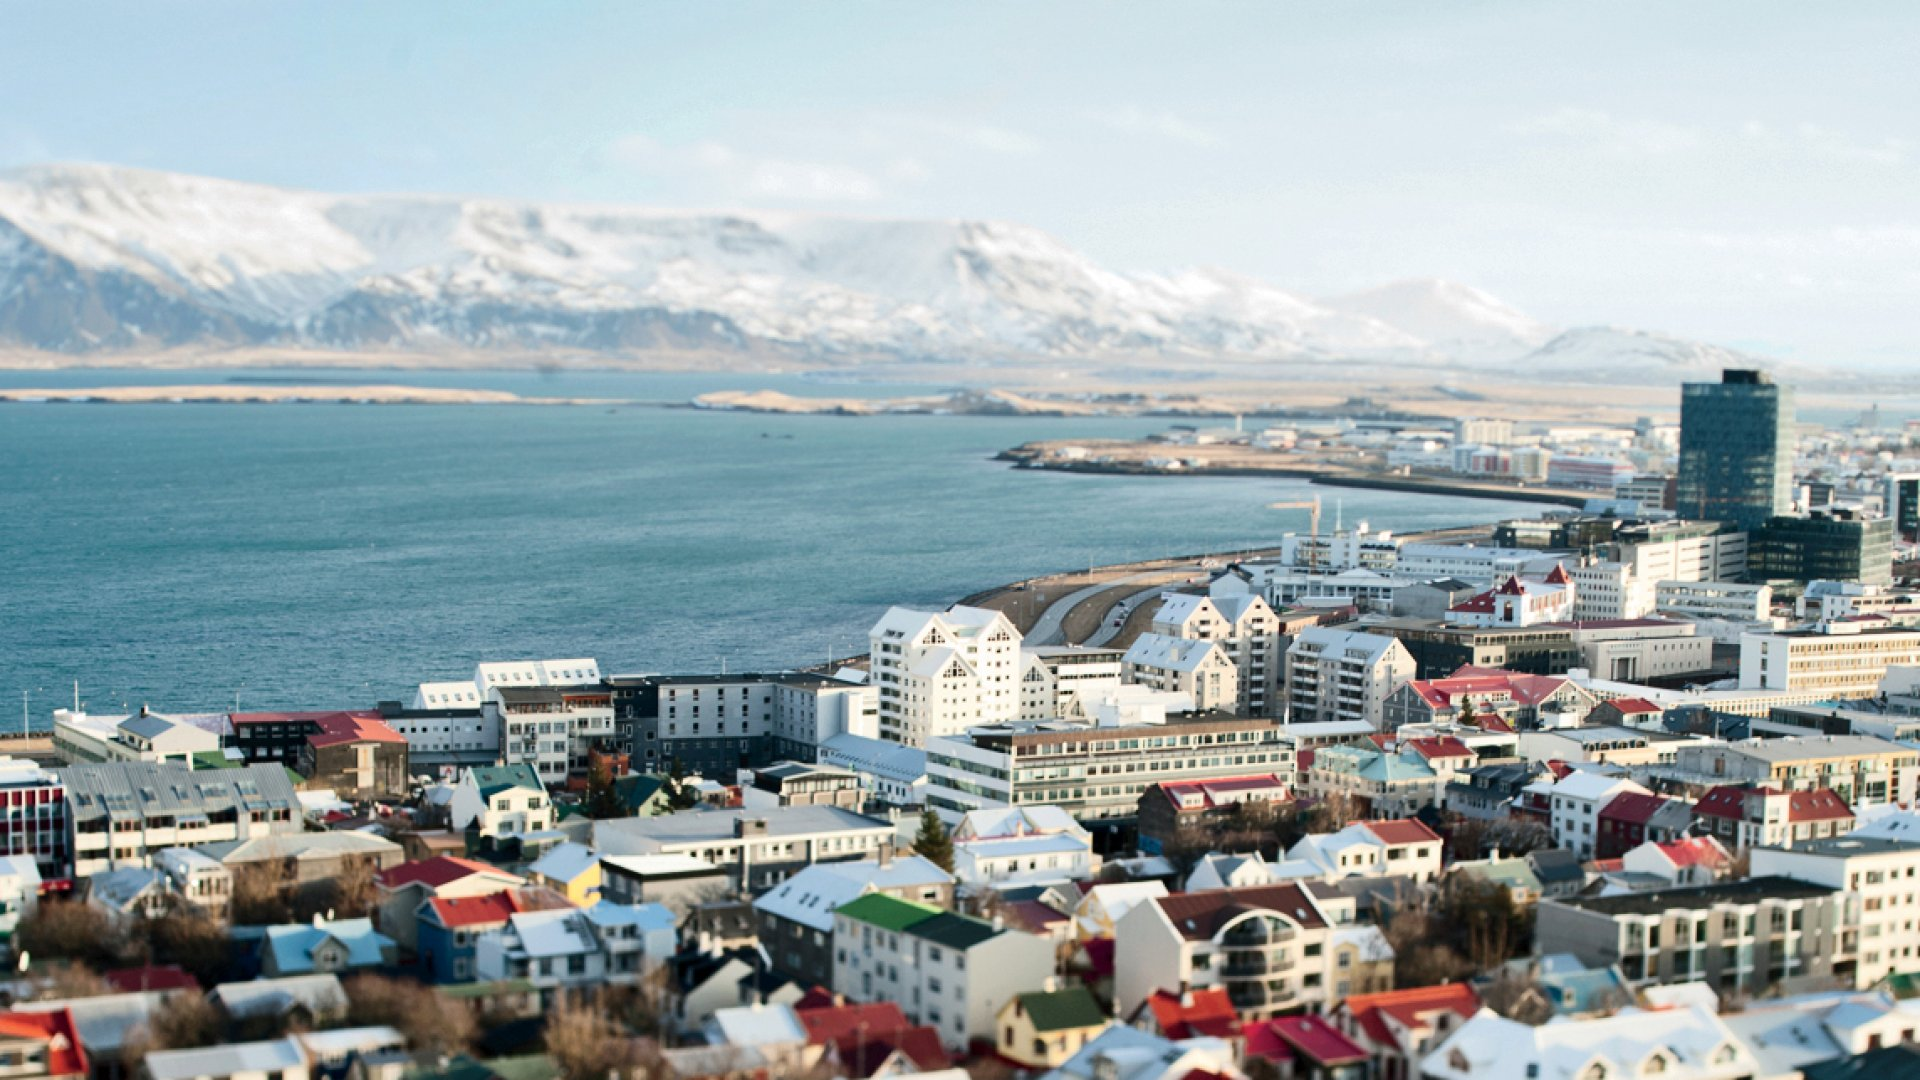 Iceland's Reykjavik boasts views like this--and the most Inc. 5000 Europe companies per capita.